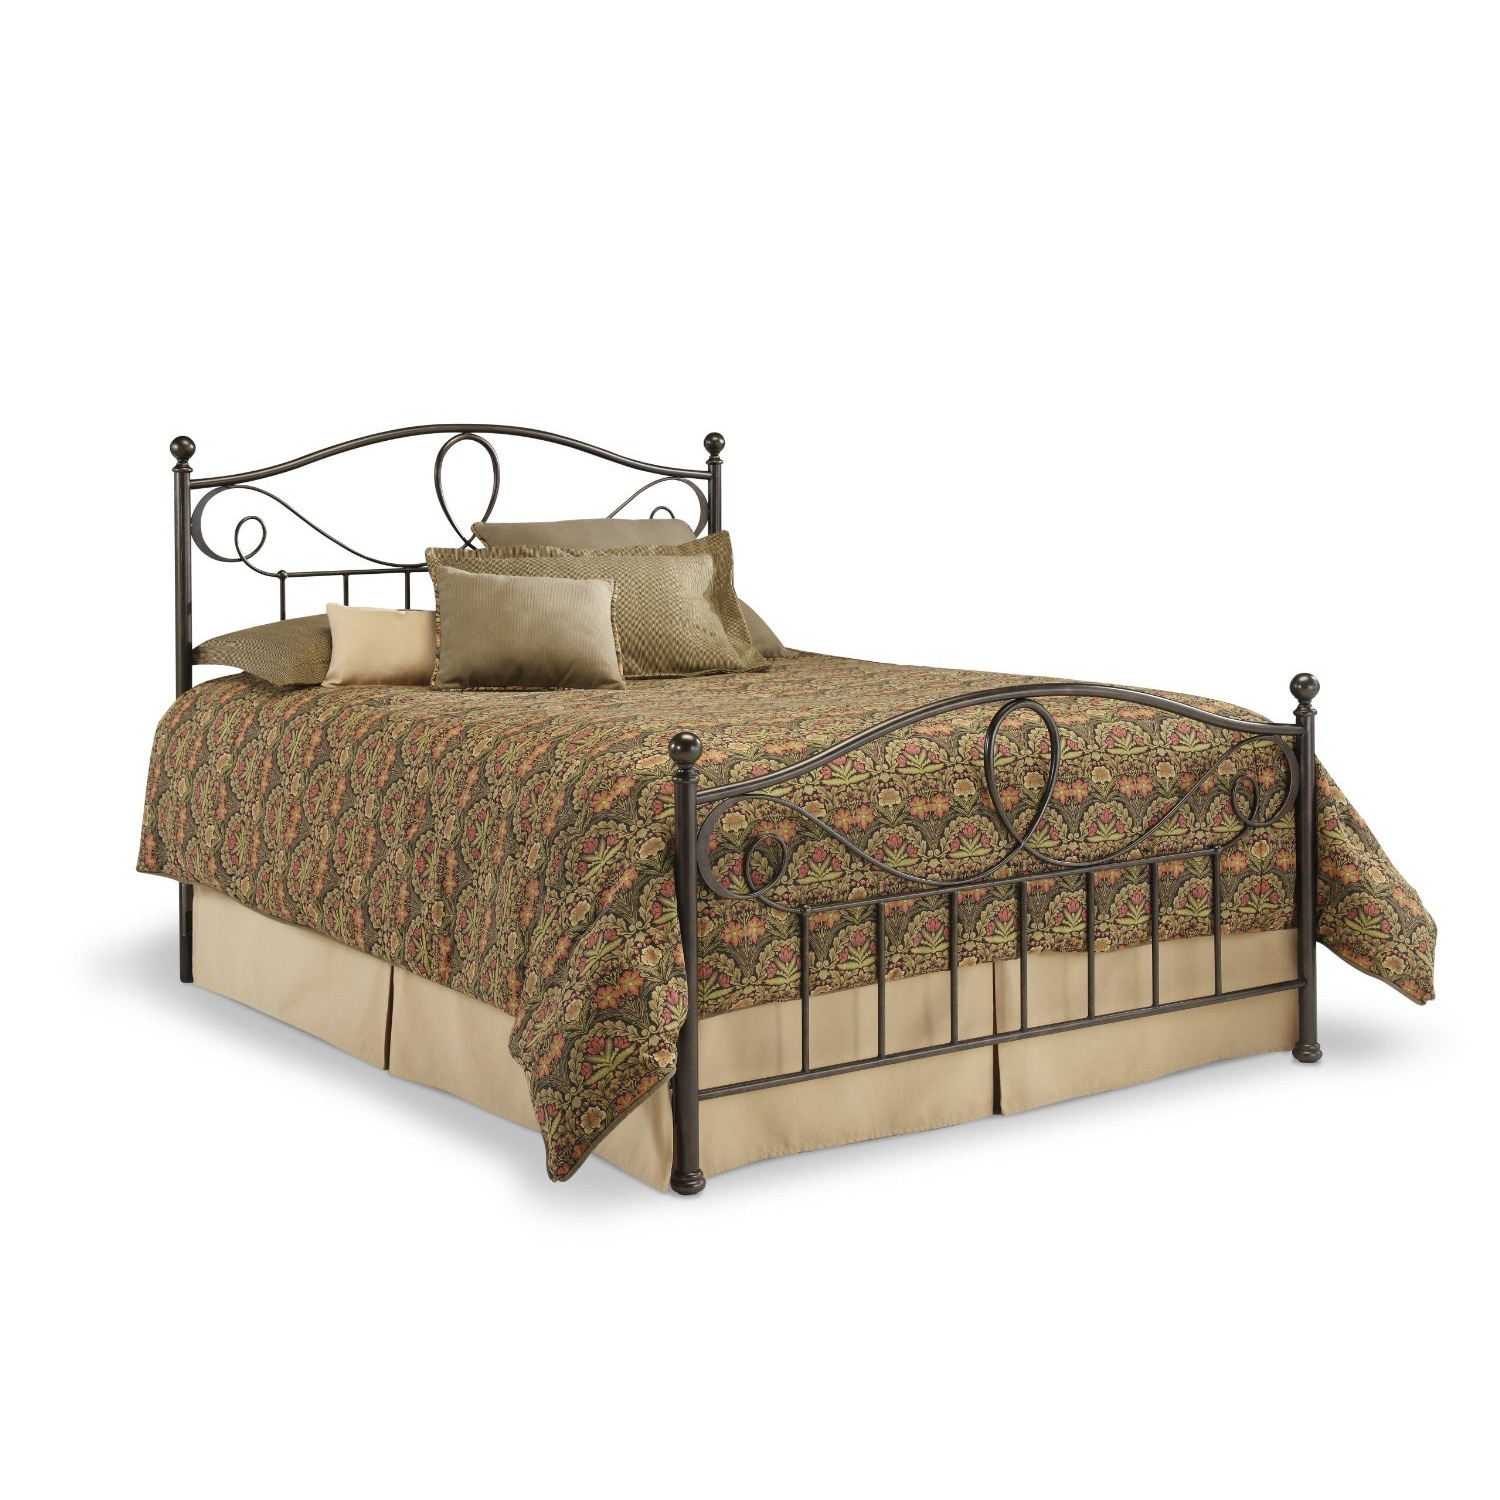 Queen size Metal Bed Frame with Headboard and Footboard in French Roast Finish, SFRBQ22336 :  For anyone who wants an eye-catching headboard and footboard, this Queen size Metal Bed Frame with Headboard and Footboard in French Roast Finish is for you. with a dynamic design featuring a standard-looking grill beneath an elegant pattern of curves, twists and provocative shapes, this metal bed with a french roast finish has some attitude. thick, strong finials sit atop stout posts to make the sylvania bed a combination of sturdy ruggedness and finesse design. this is a bed that is sure to garner attention.